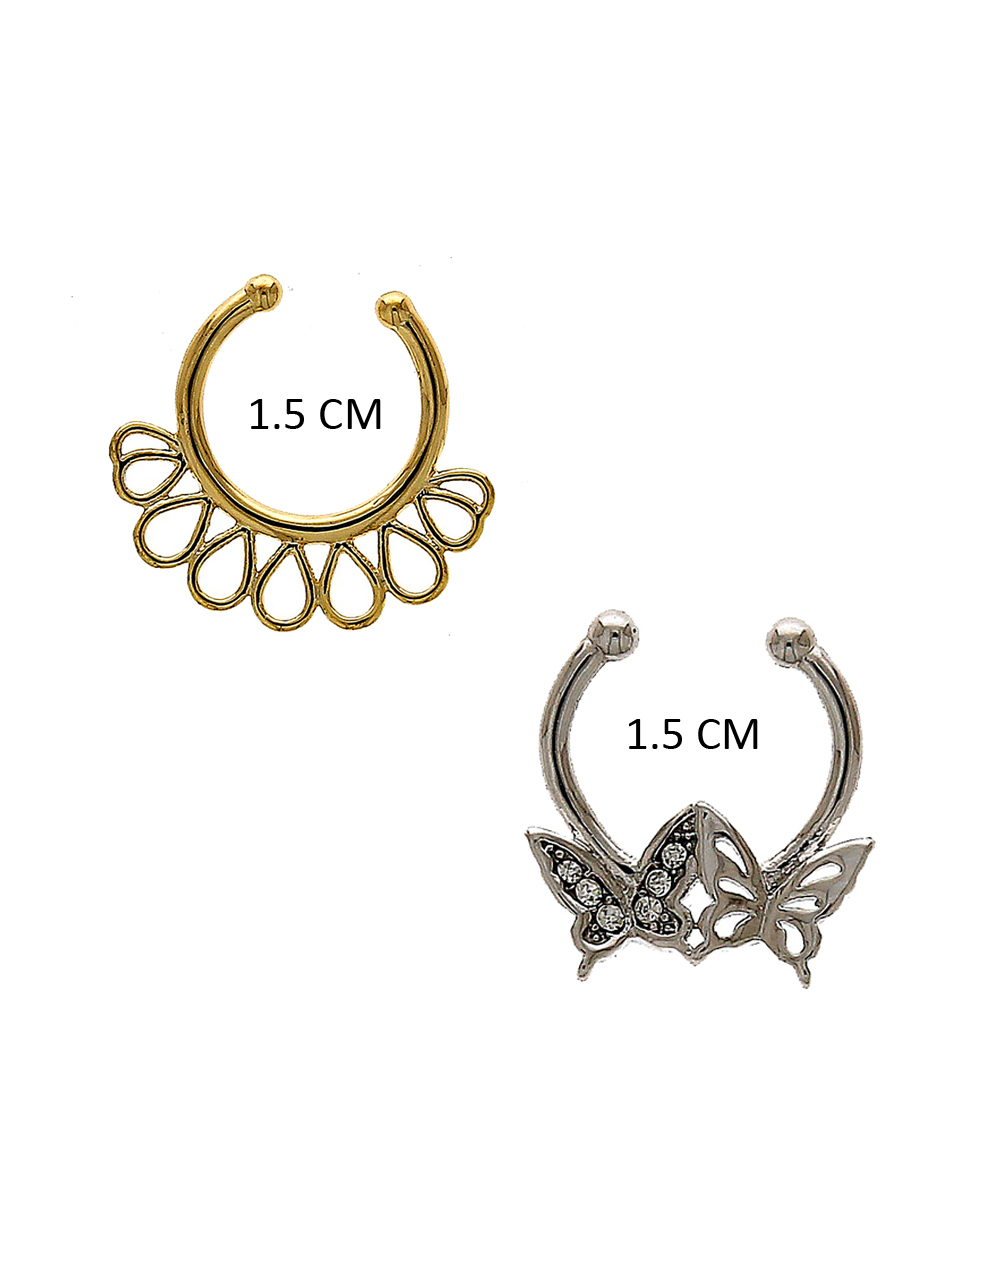 Floral Design Fancy Silver-Gold Finish Nose Septum Ring